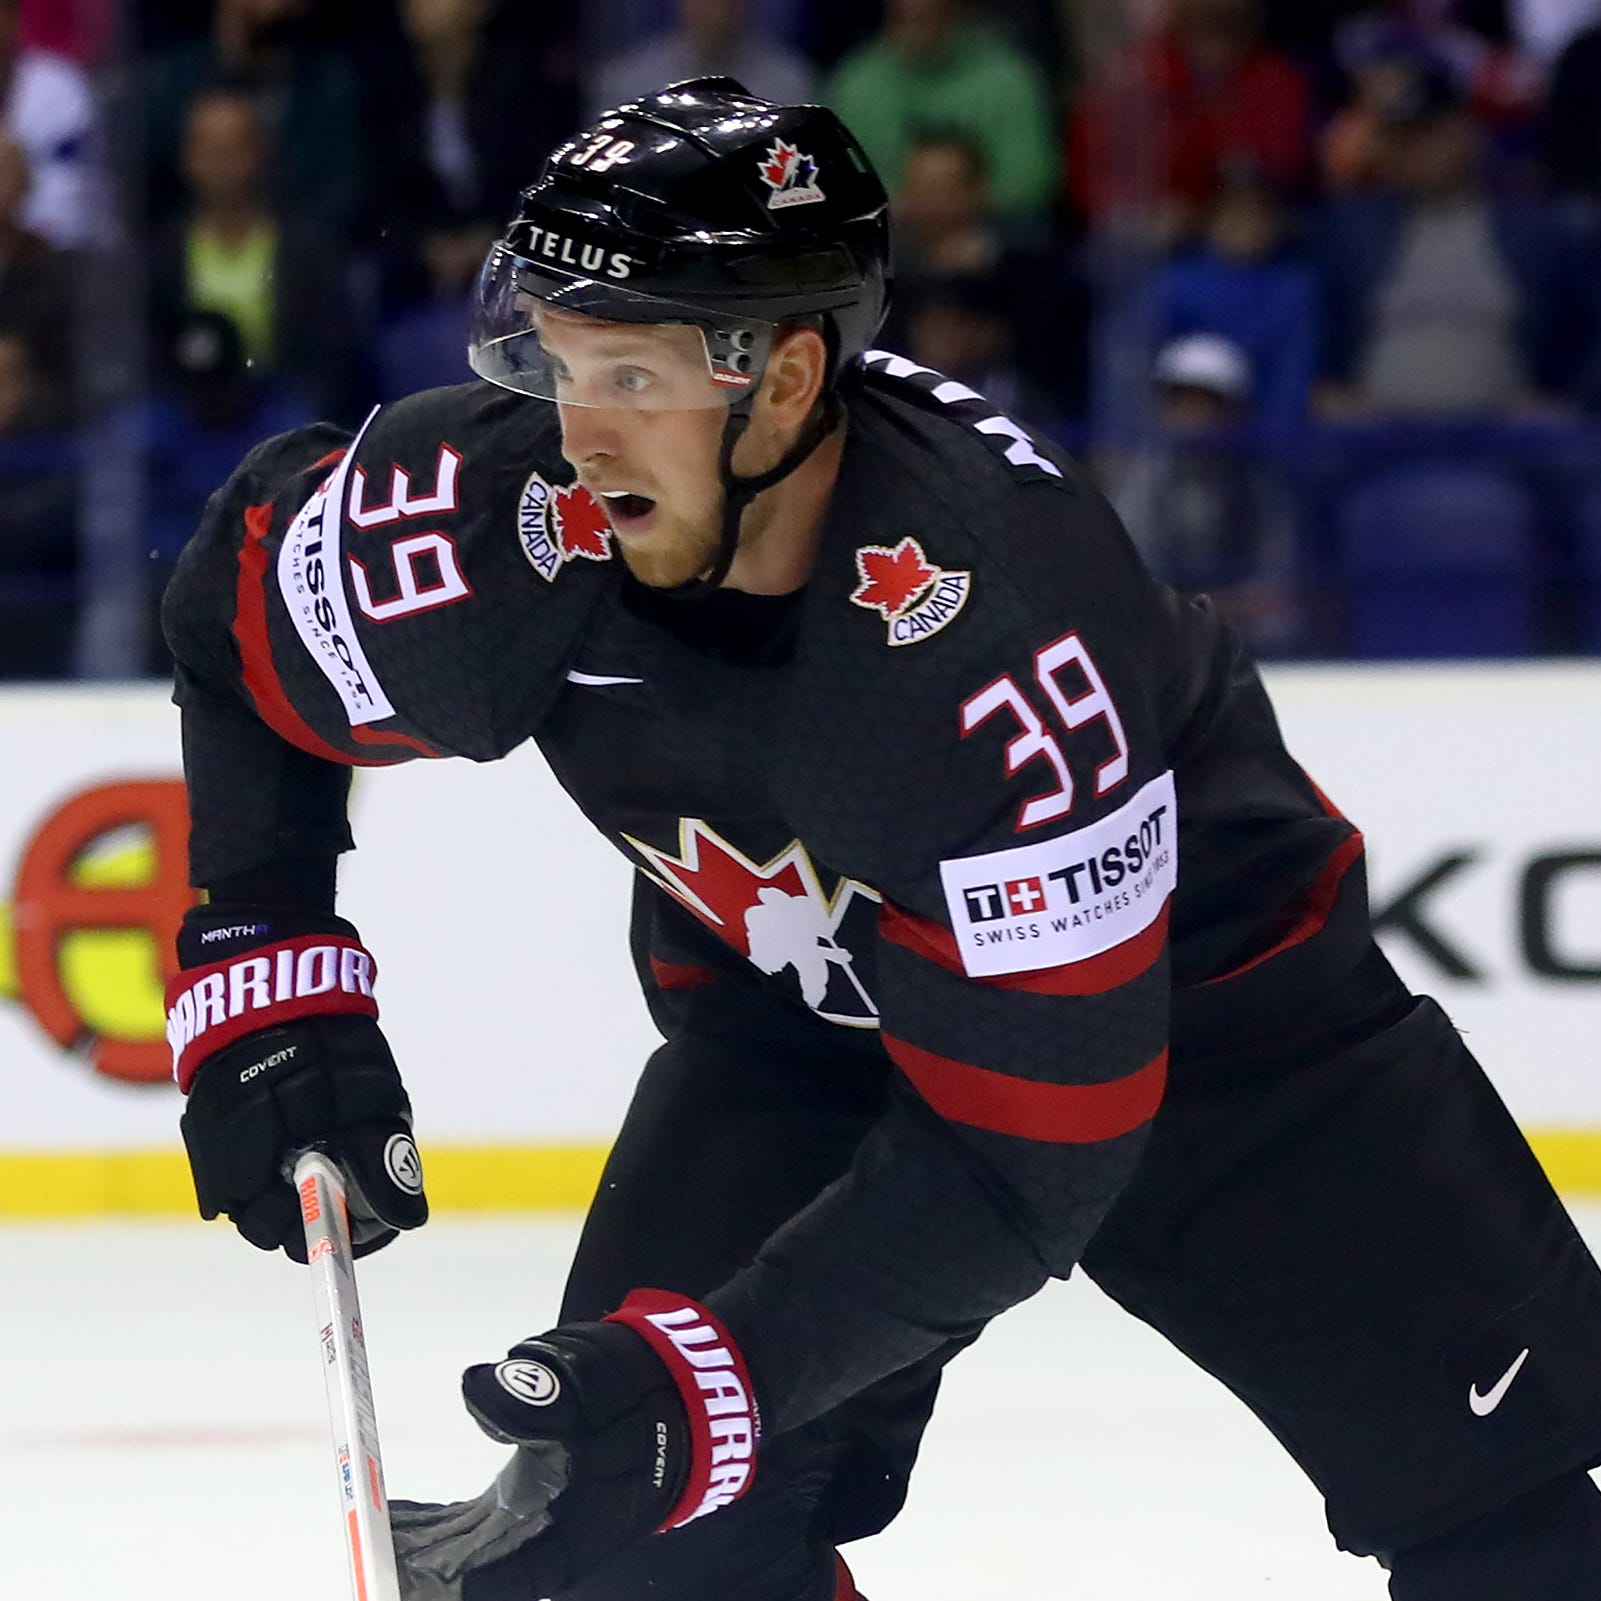 Detroit Red Wings at Worlds: Anthony Mantha's pretty goal highlights Saturday